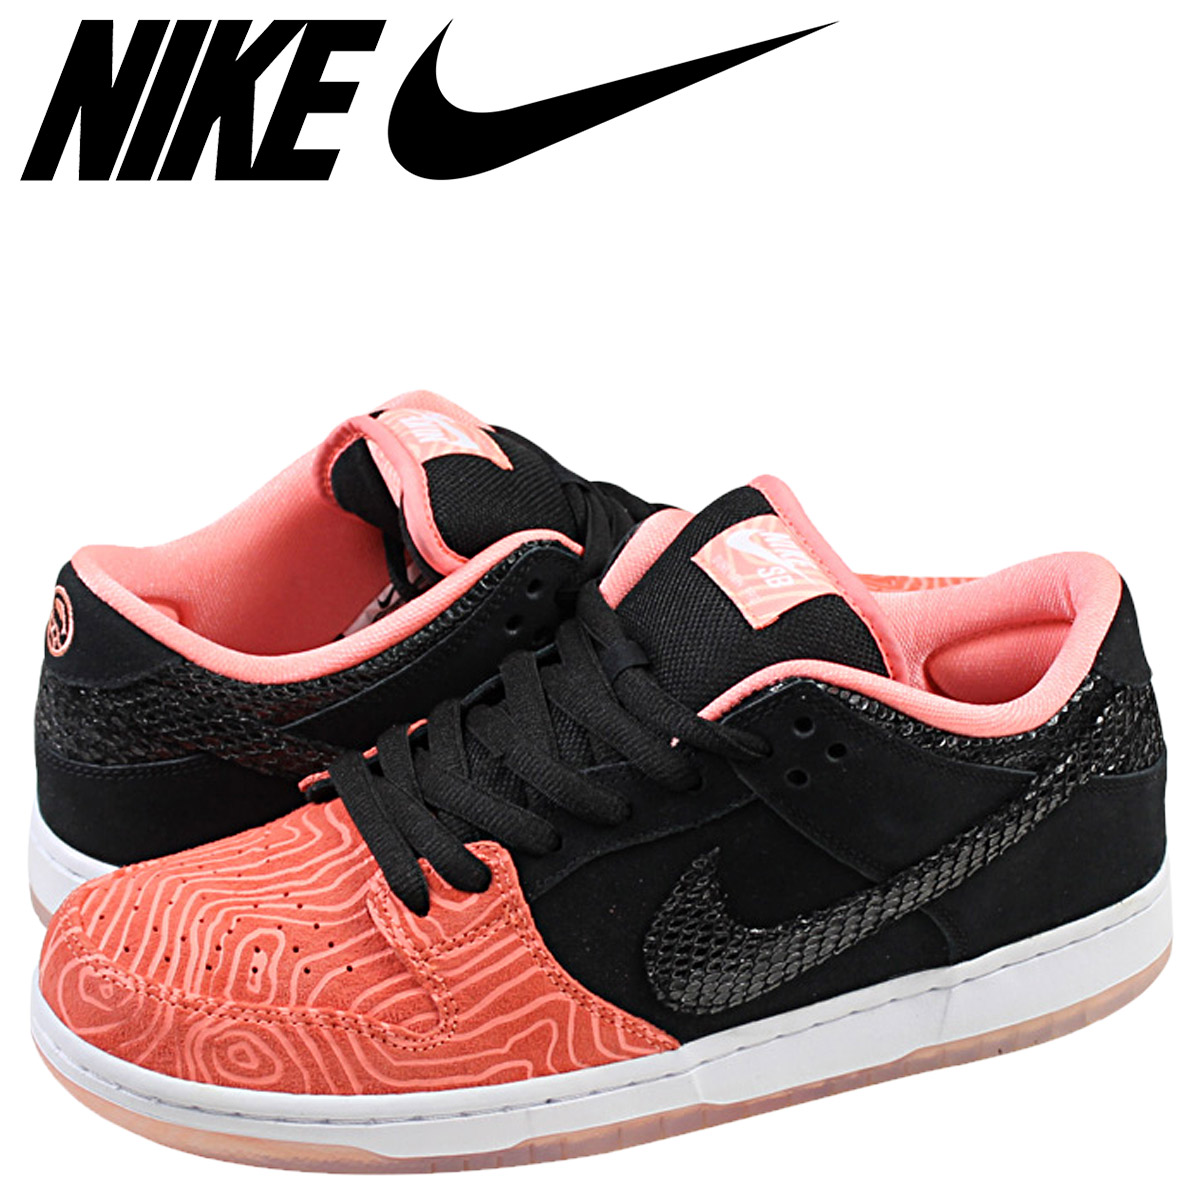 Whats up Sports  NIKE Nike dunk sneakers DUNK LOW PREMIUM SB dunk ... 9a8a5f0d1d